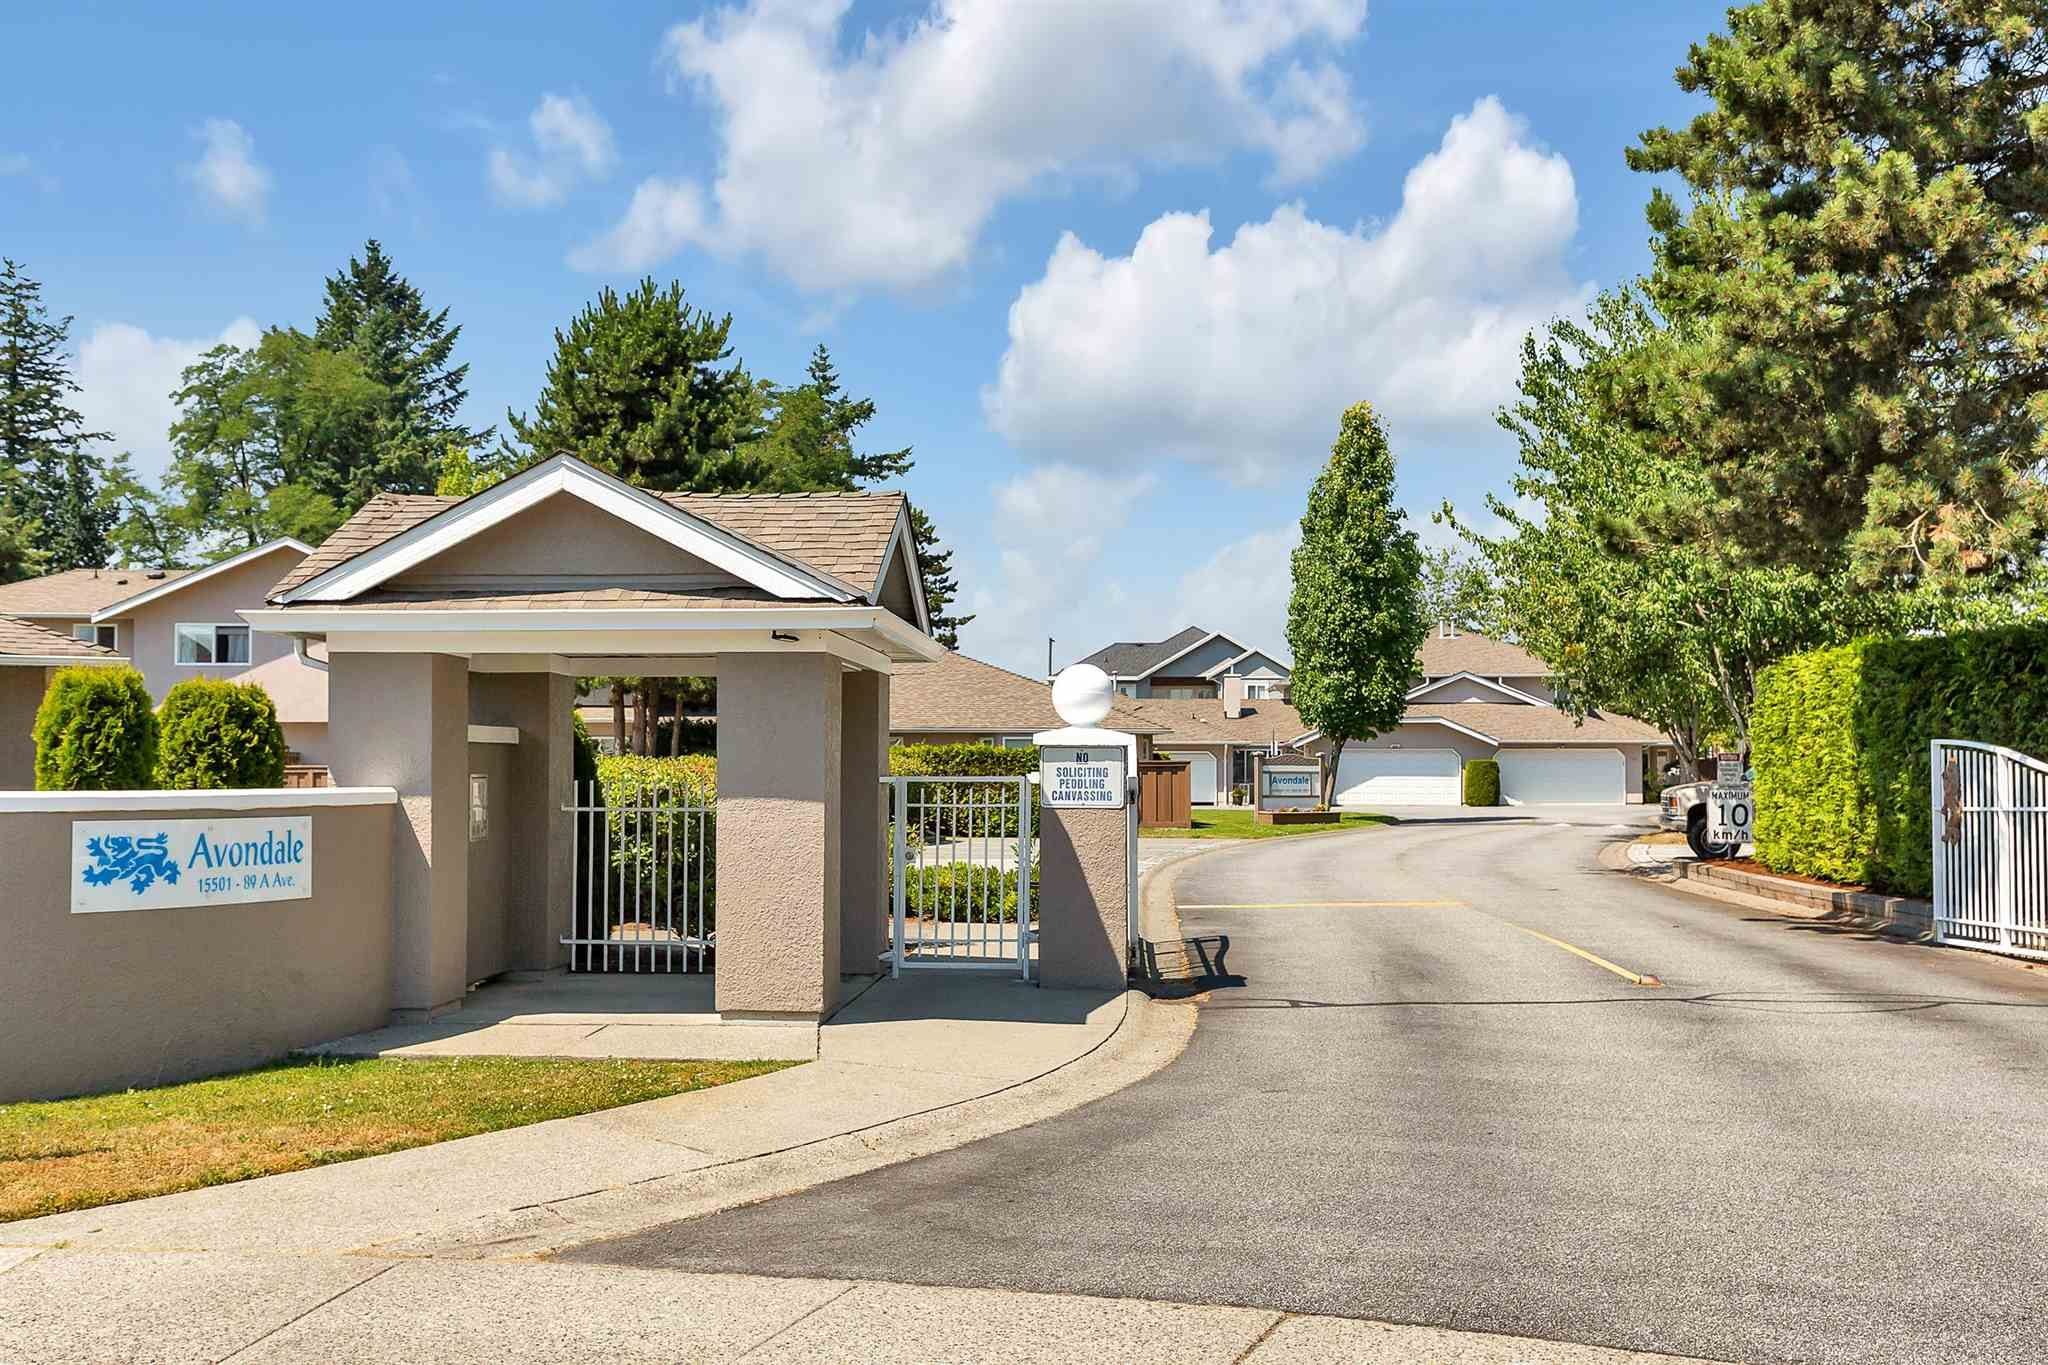 """Main Photo: 171 15501 89A Avenue in Surrey: Fleetwood Tynehead Townhouse for sale in """"AVONDALE"""" : MLS®# R2597130"""